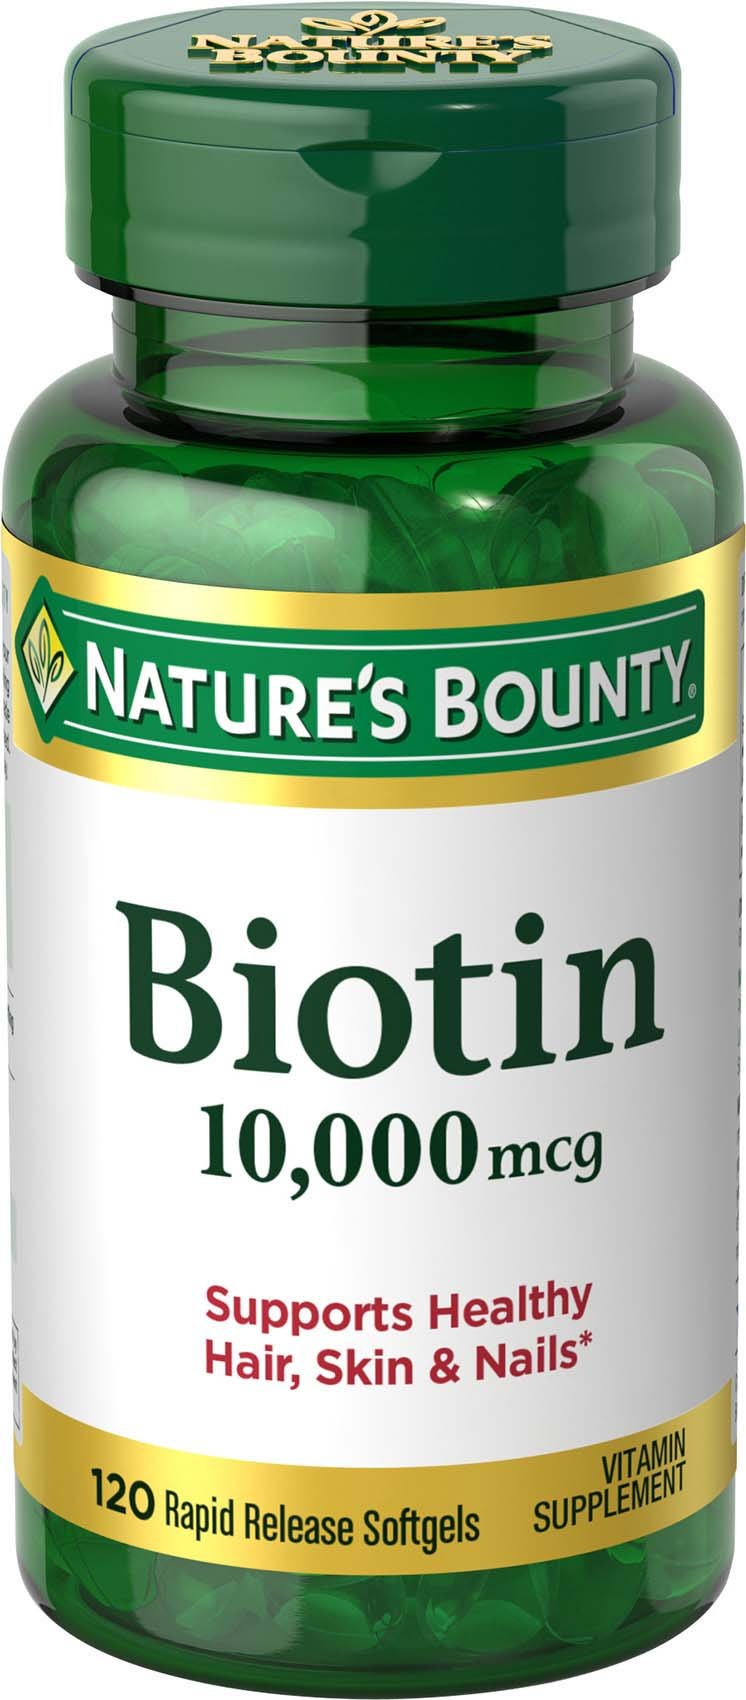 Nature's Bounty Biotin, 10,000 mcg (120 Rapid Release Softgels) B Vitamin Supplement